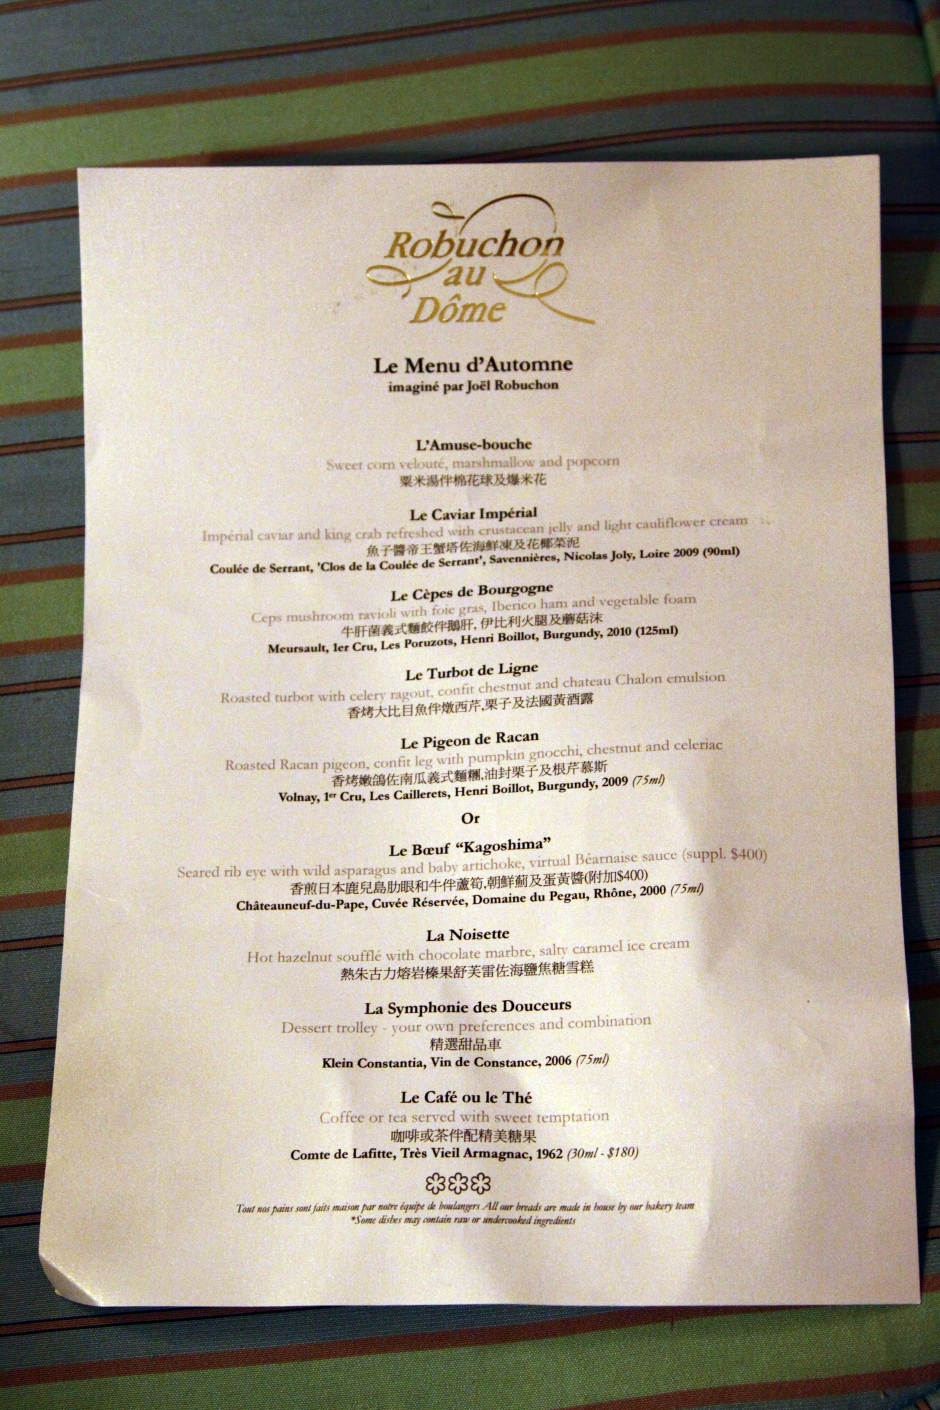 ROBUCHON AU DOME, MENU 053